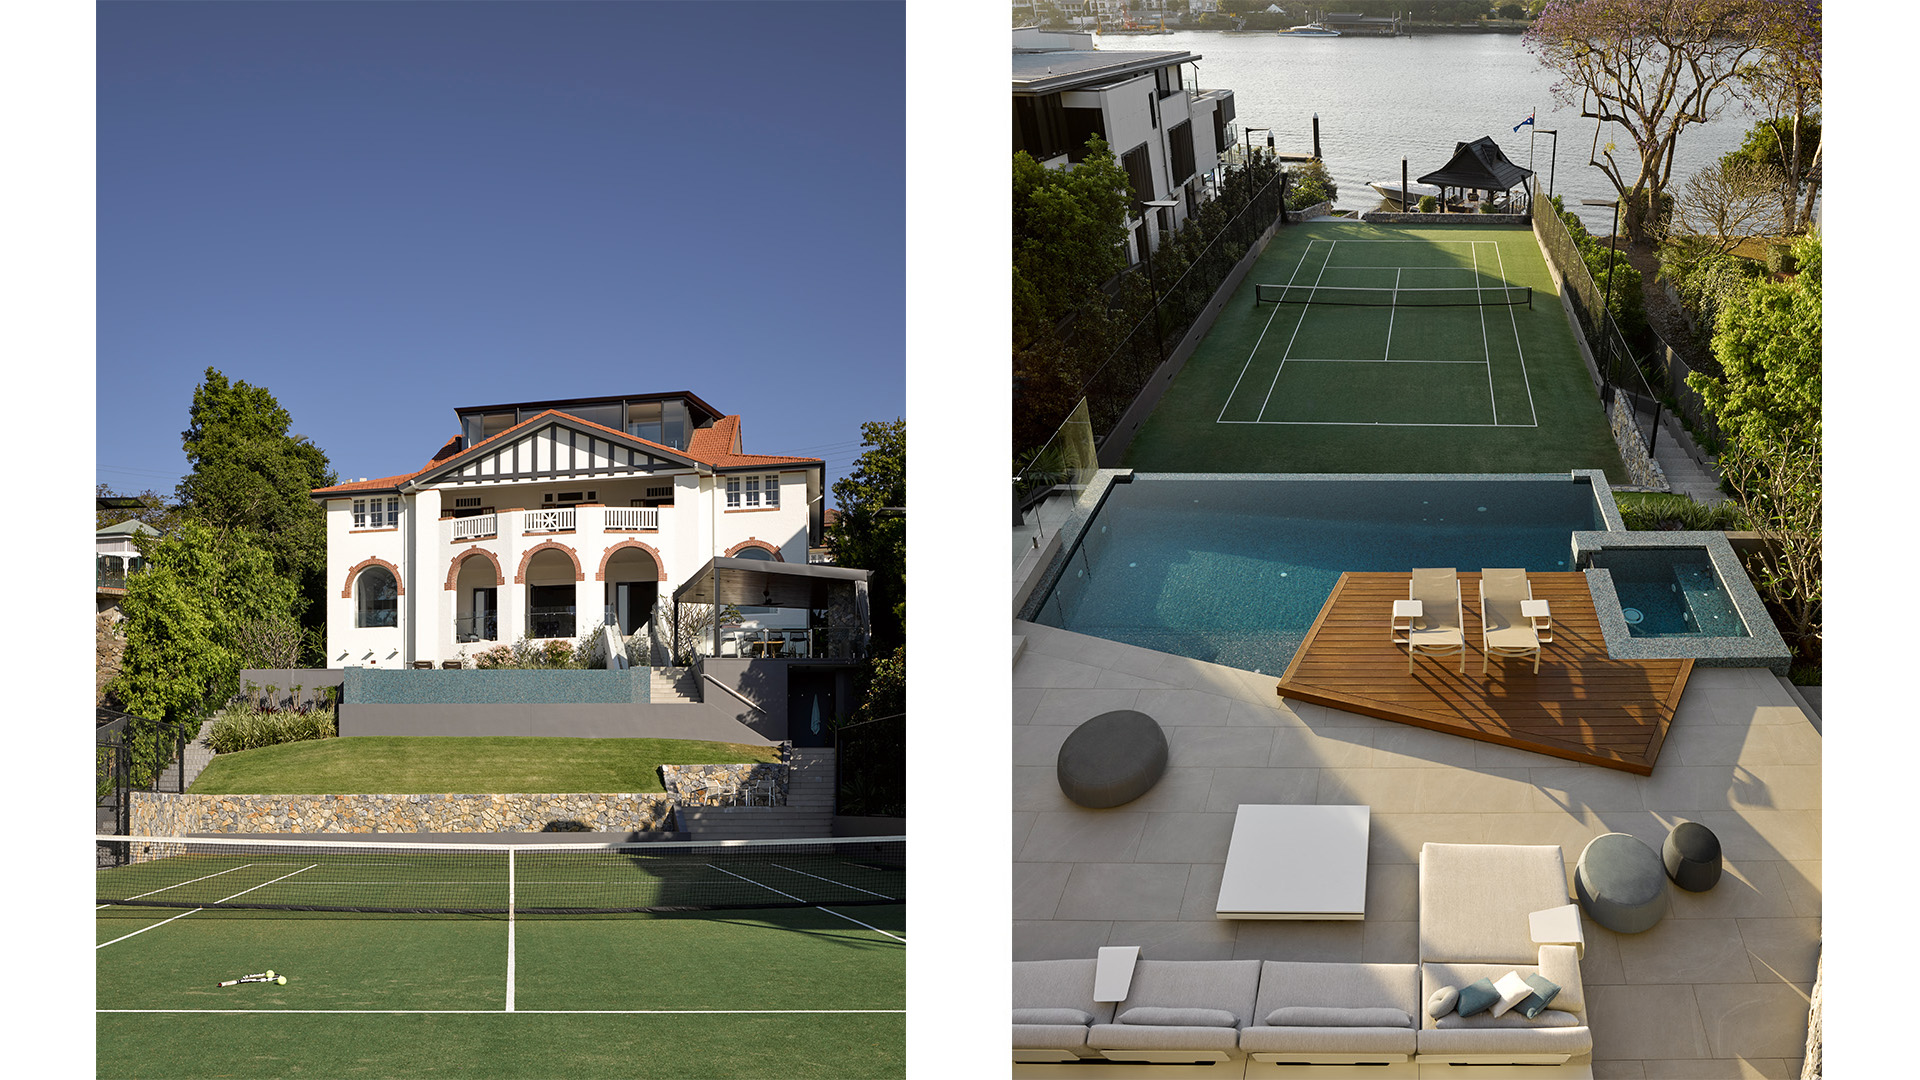 Maritimo tennis court and pool